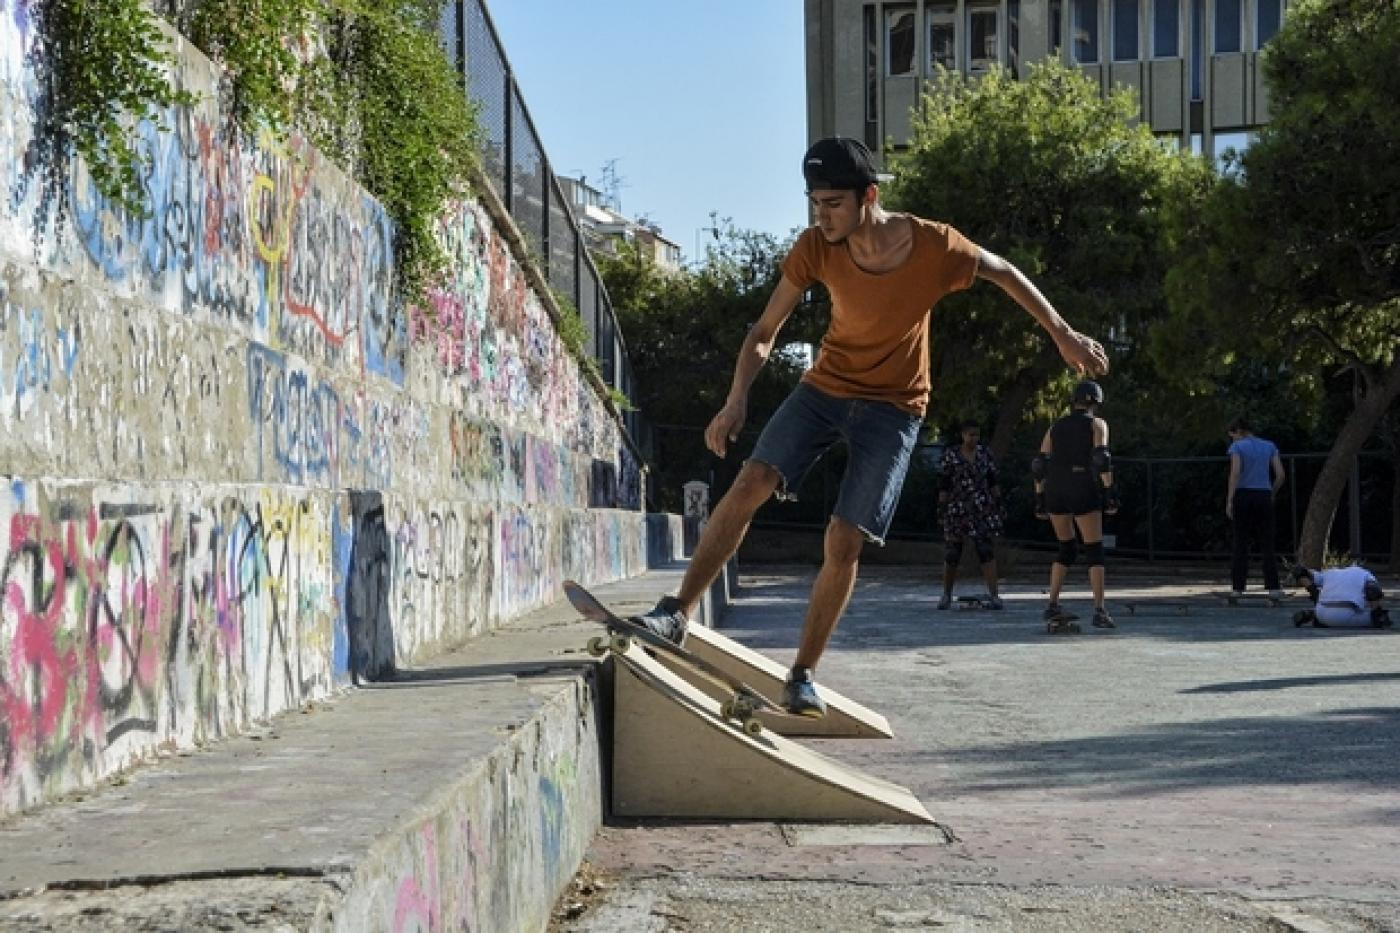 Skate Expectations How Athens Child Refugees Find Freedom On